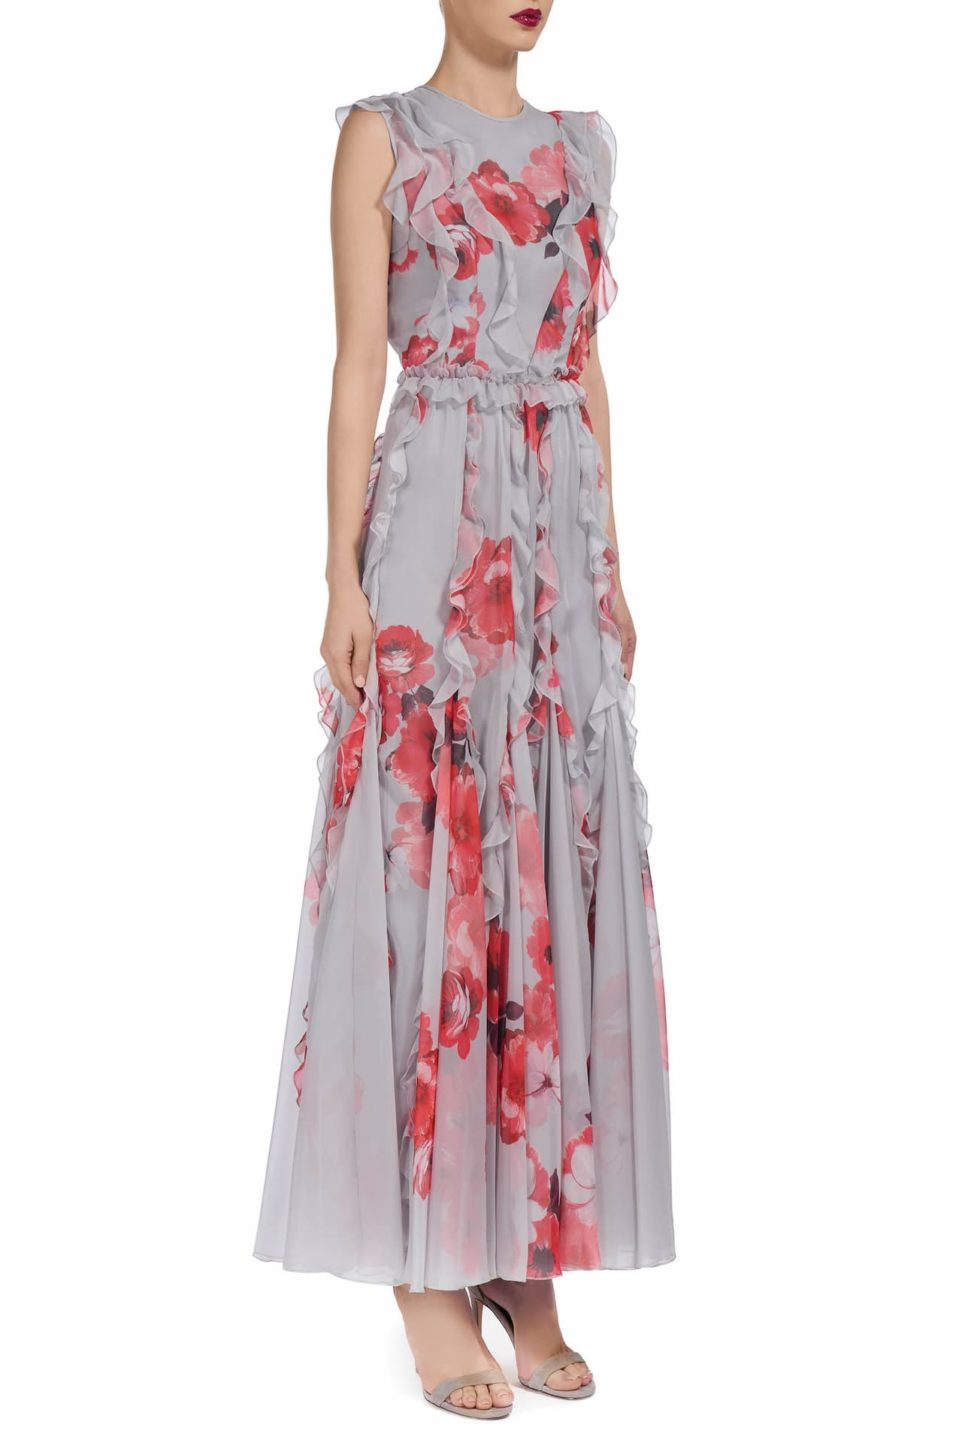 Brielle PS1913 Grey chiffon dress with coral red flower and ruffle detail